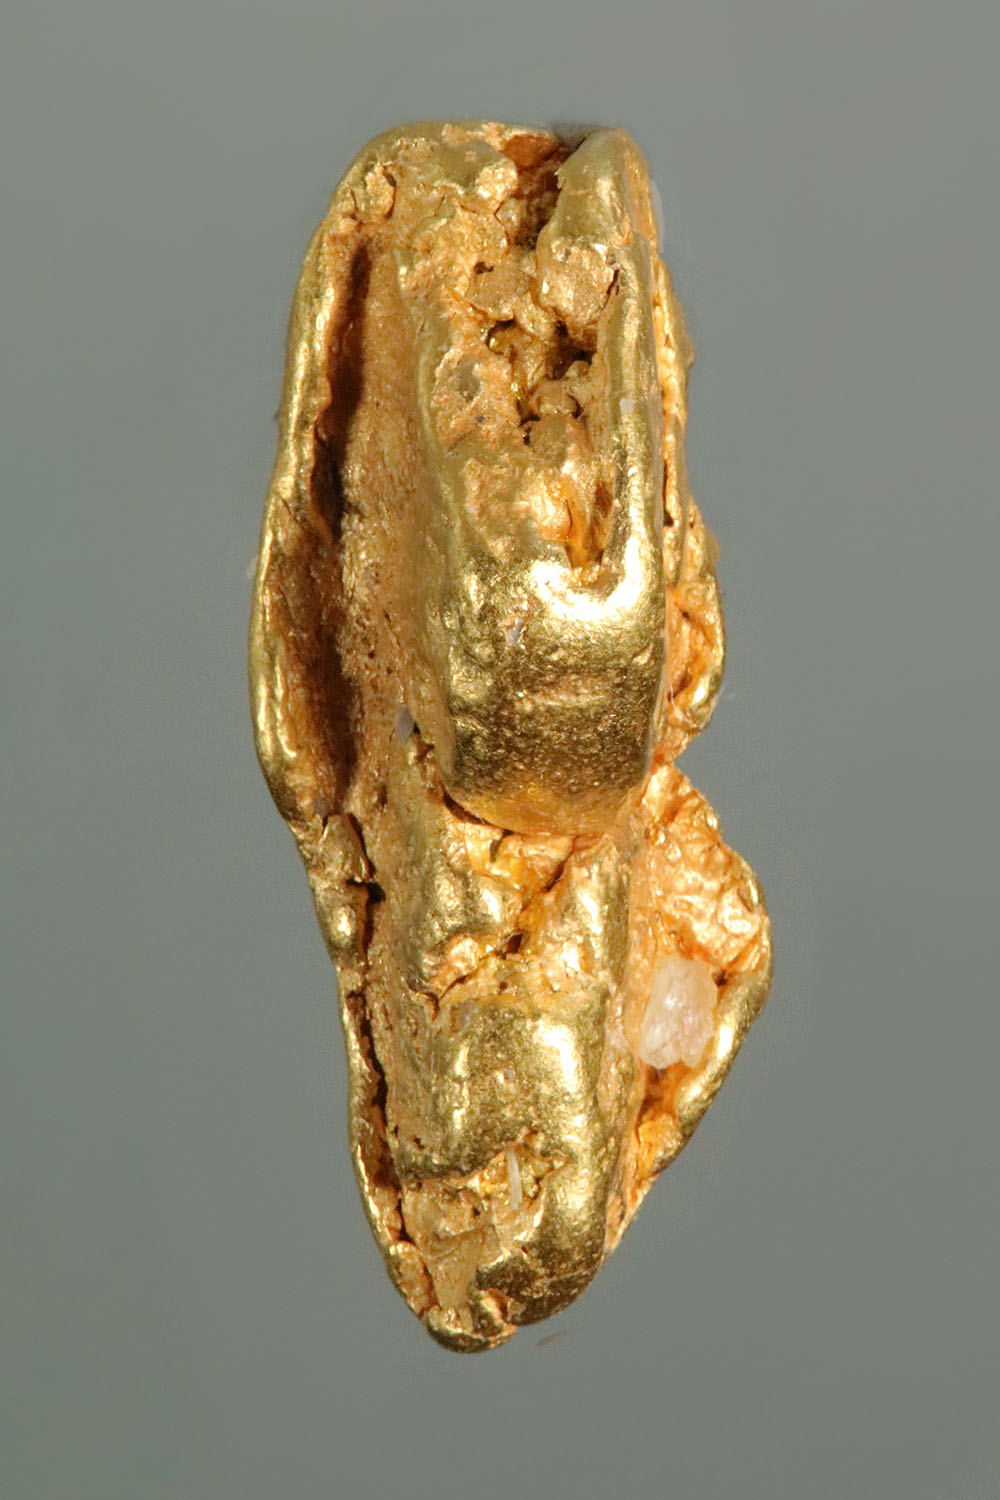 Elongated and Dimensional Gold Nugget From California